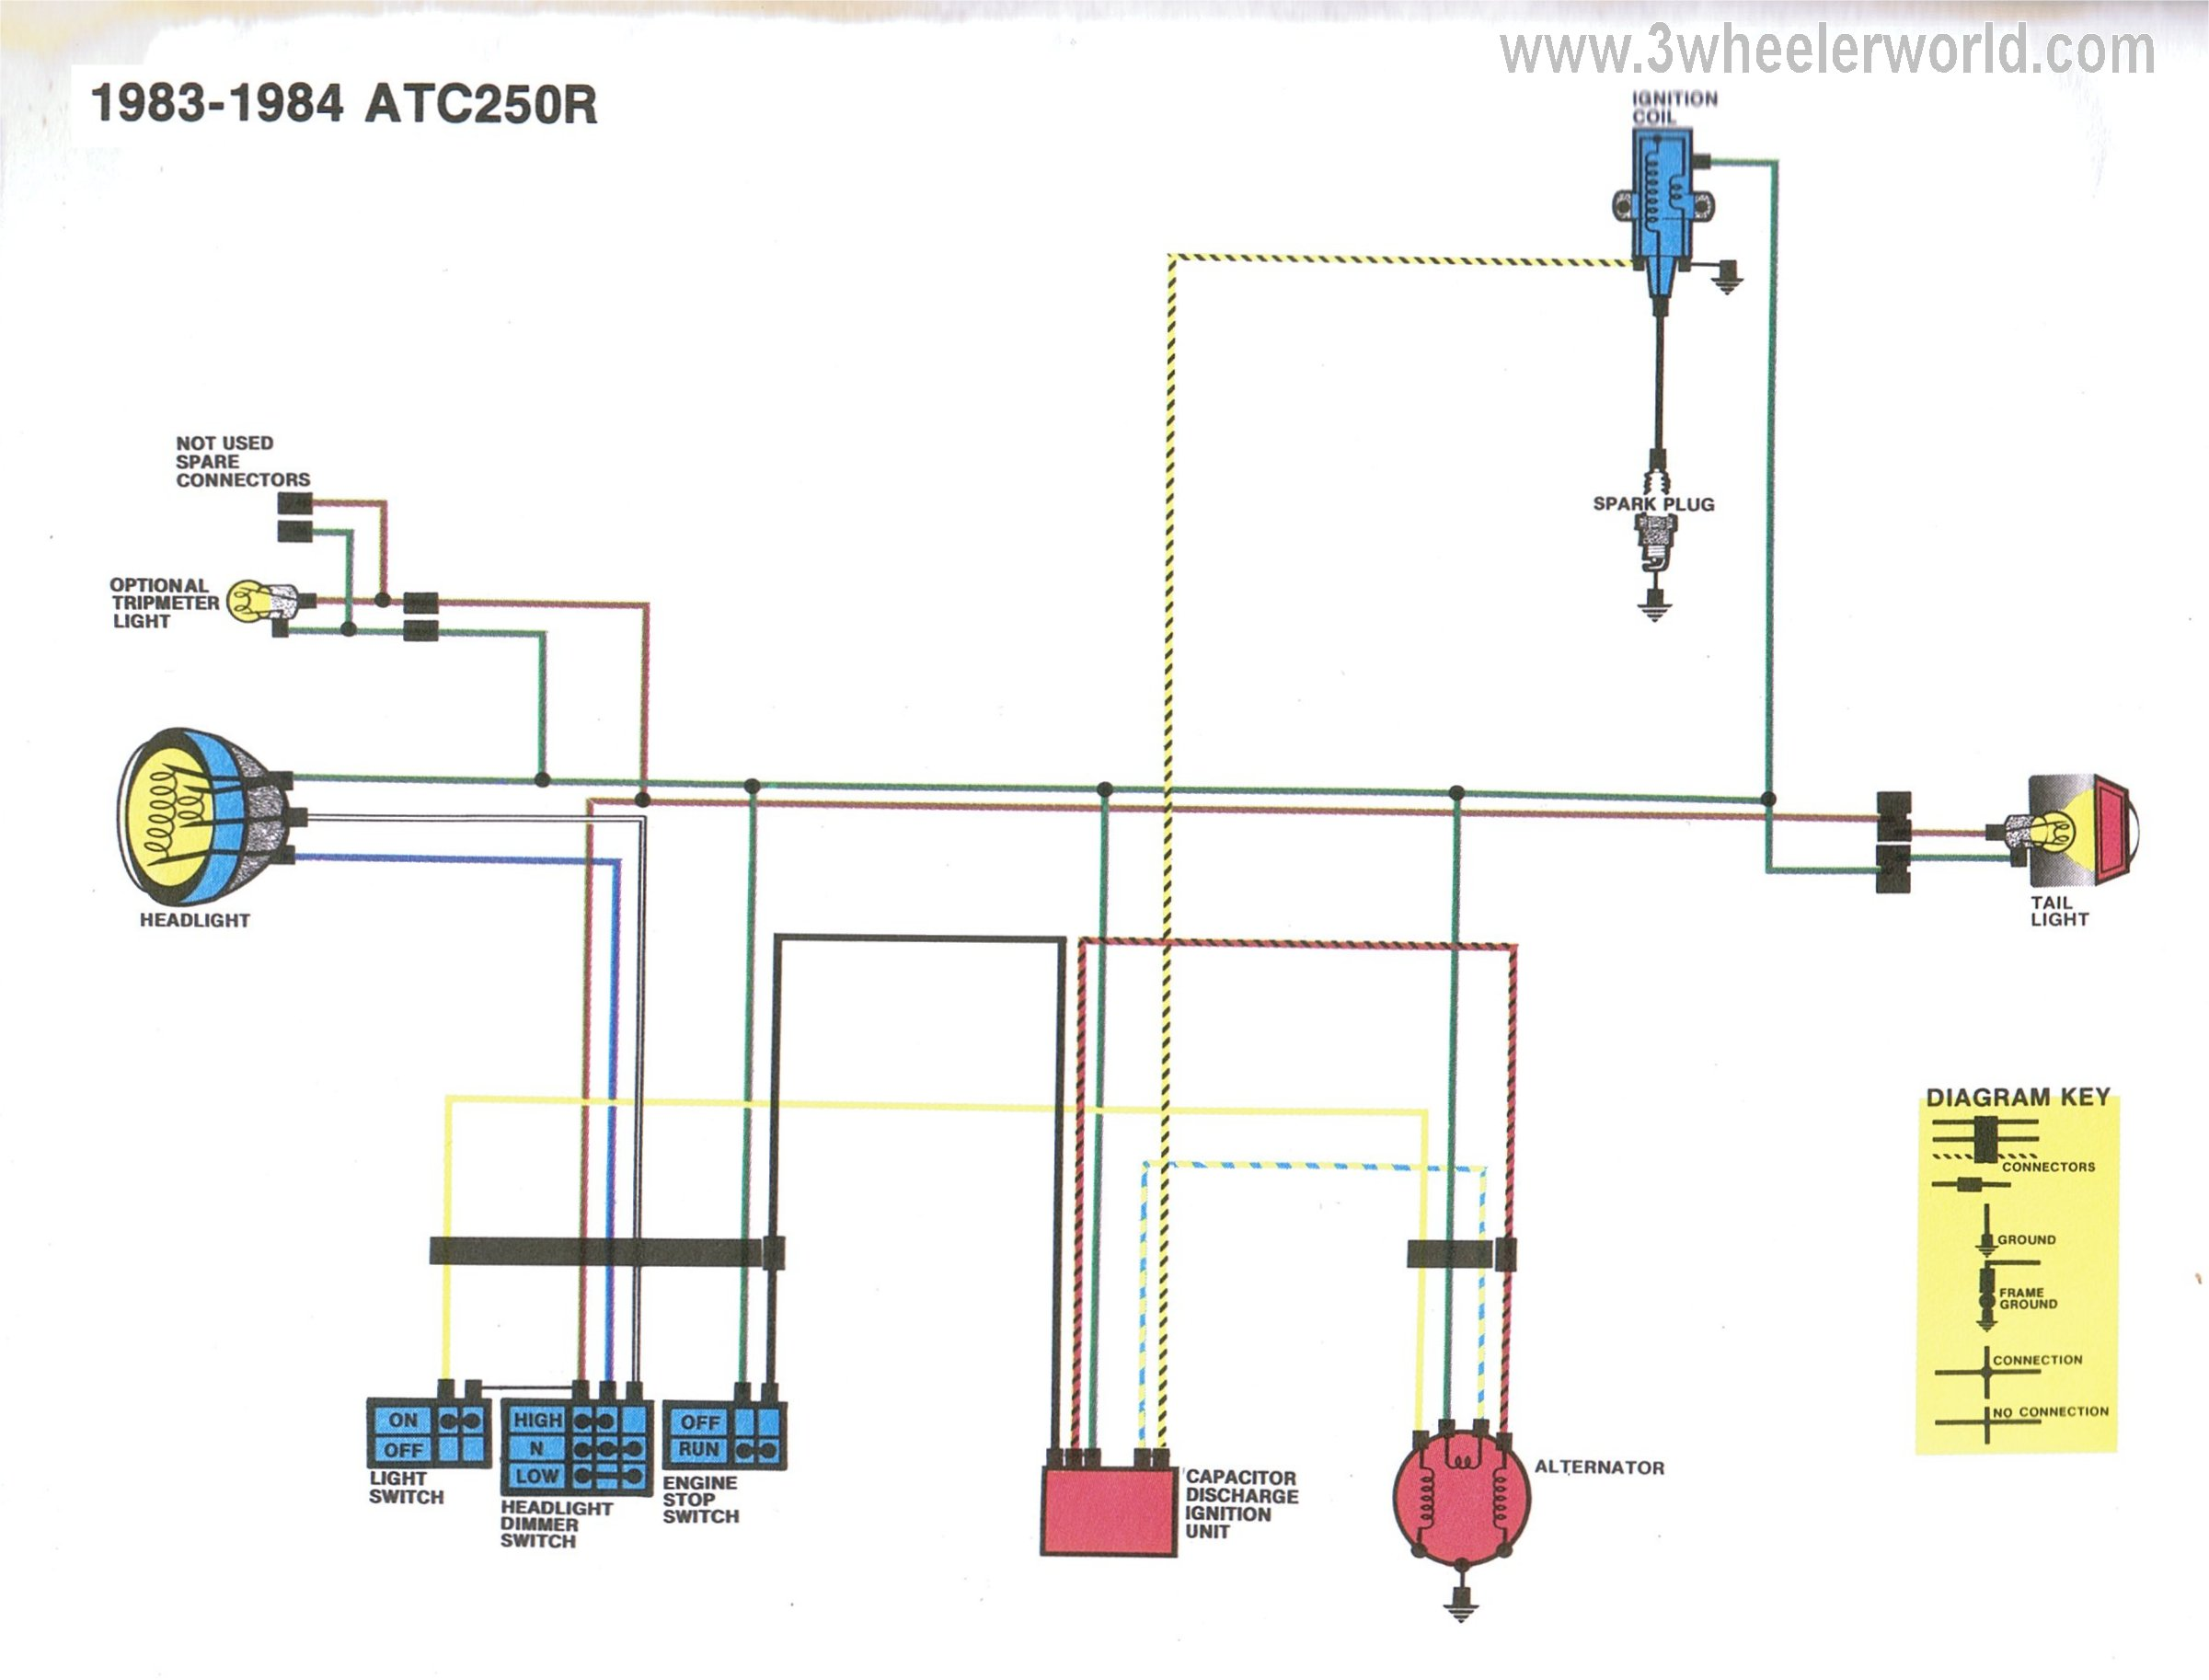 ATC250Rx83Thru84 1983 atc 70 wiring diagram wiring diagram and schematic design atc 70 wiring diagram at sewacar.co